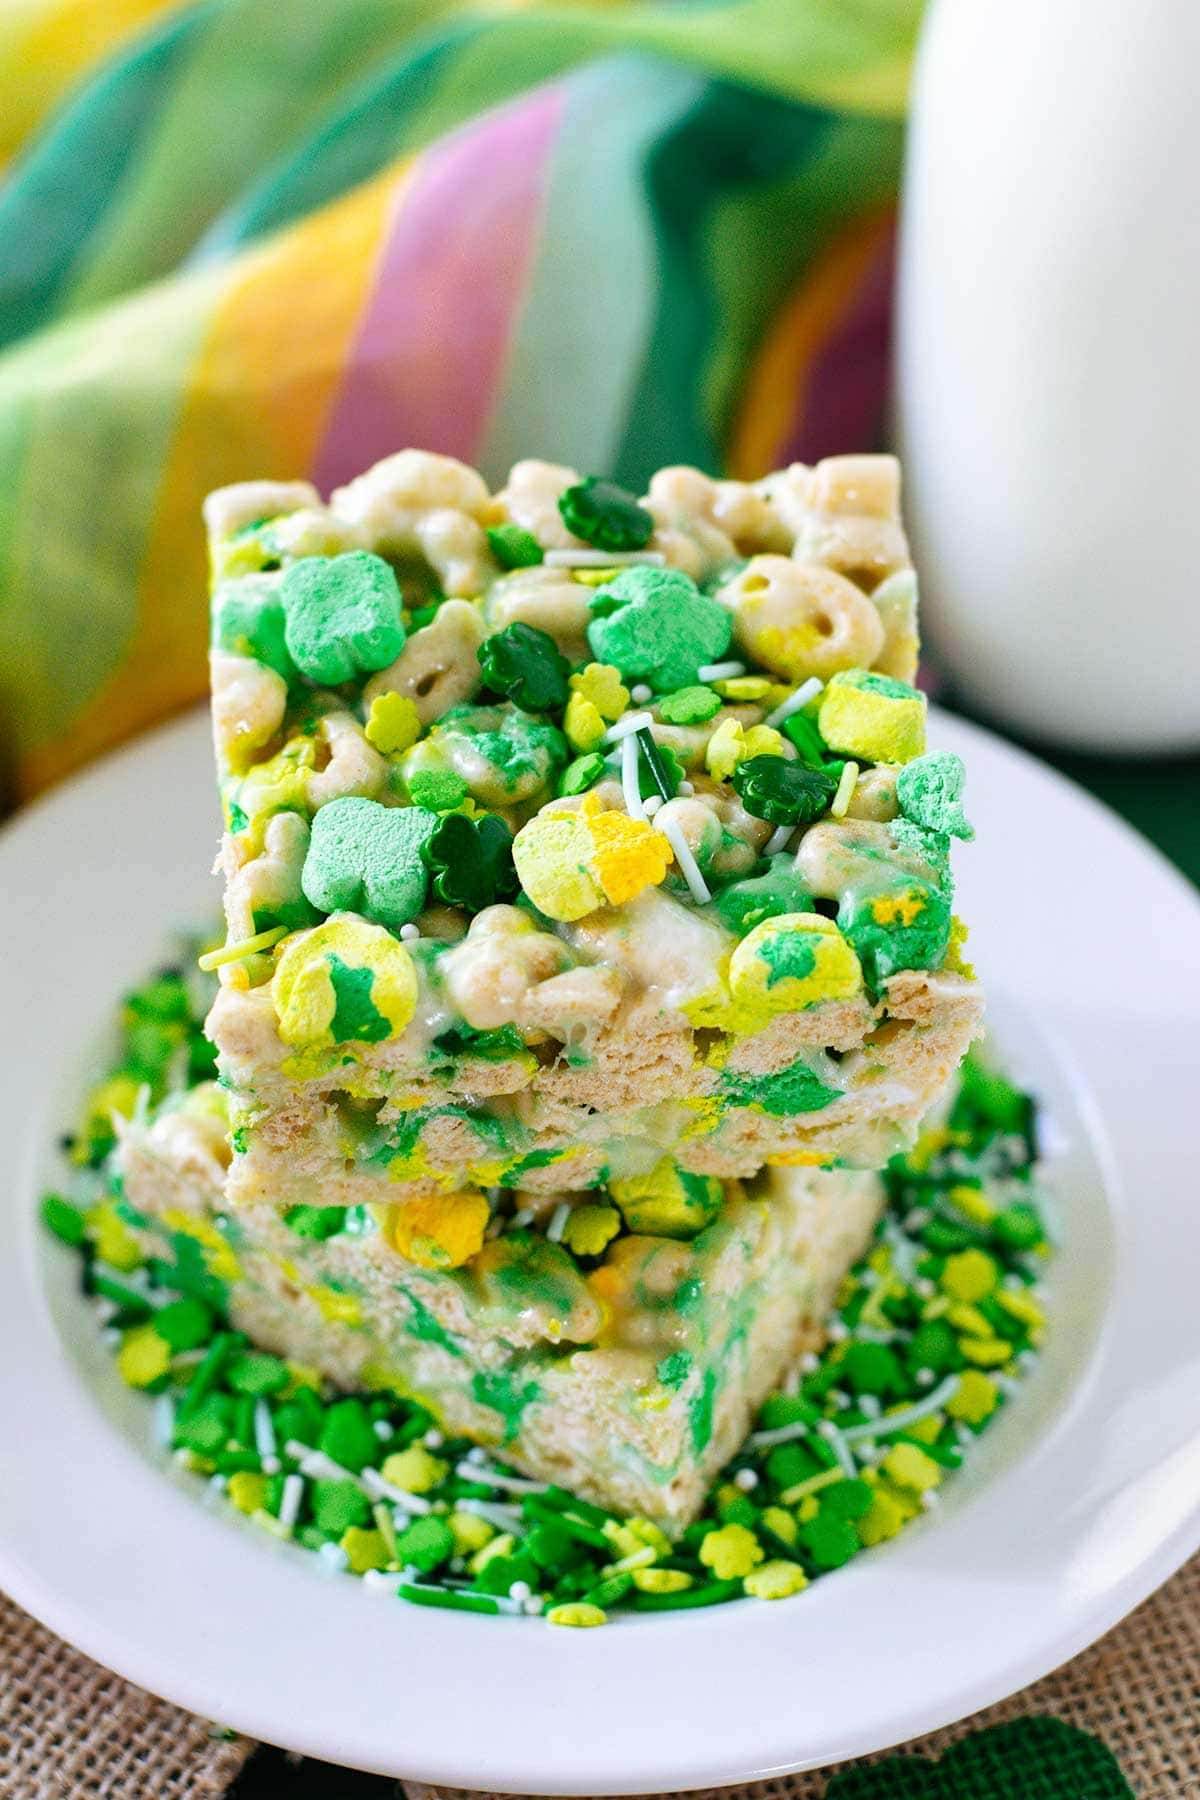 St. Patrick's Day themed Lucky Charms Cereal Treats in a white serving plate surrounded by St. Patrick's Day sprinkles.